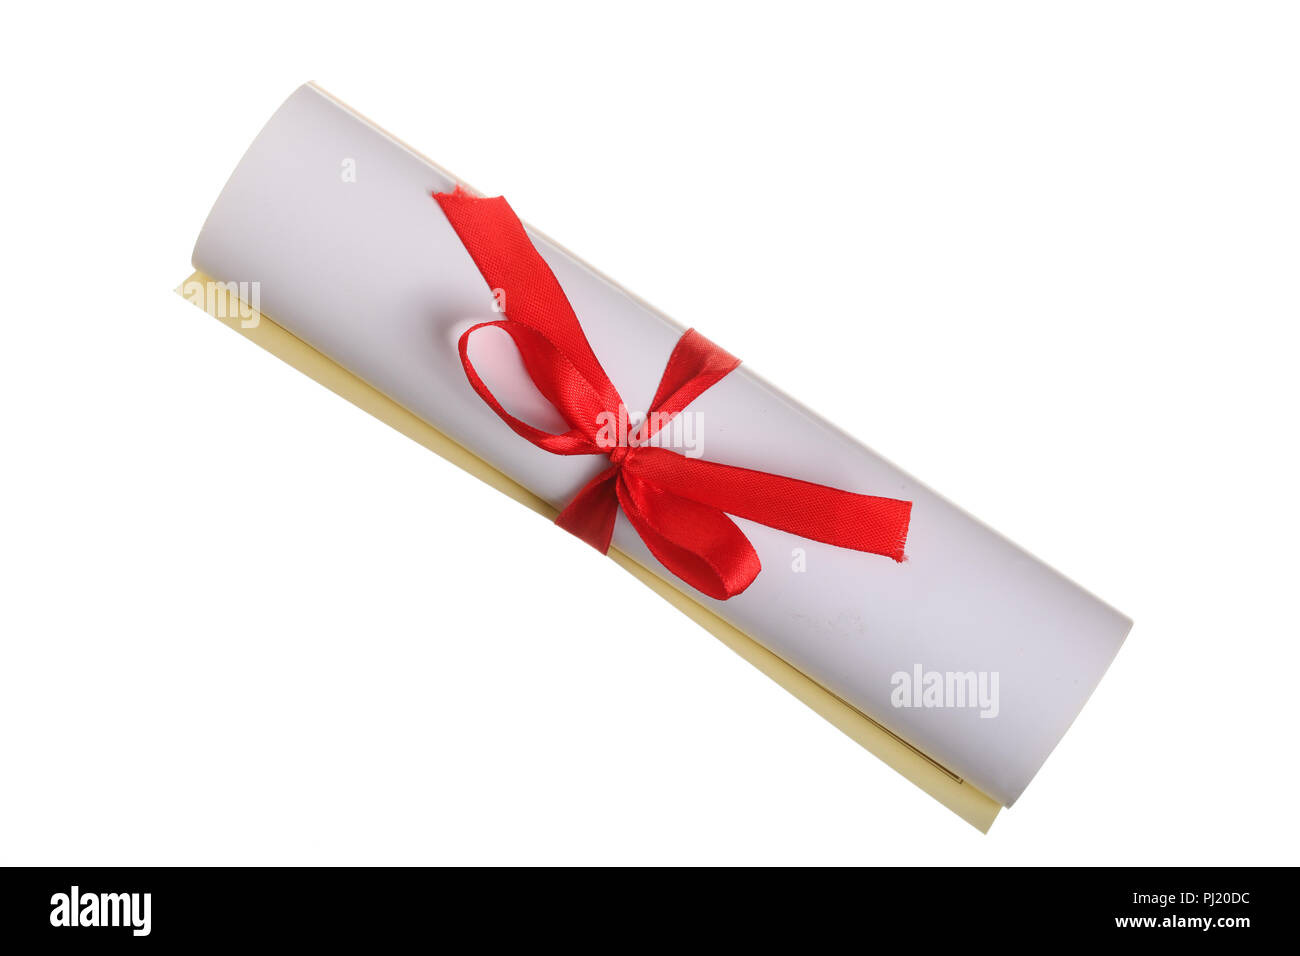 Diploma with red ribbon isolated on white background. Top view. Flat lay. - Stock Image